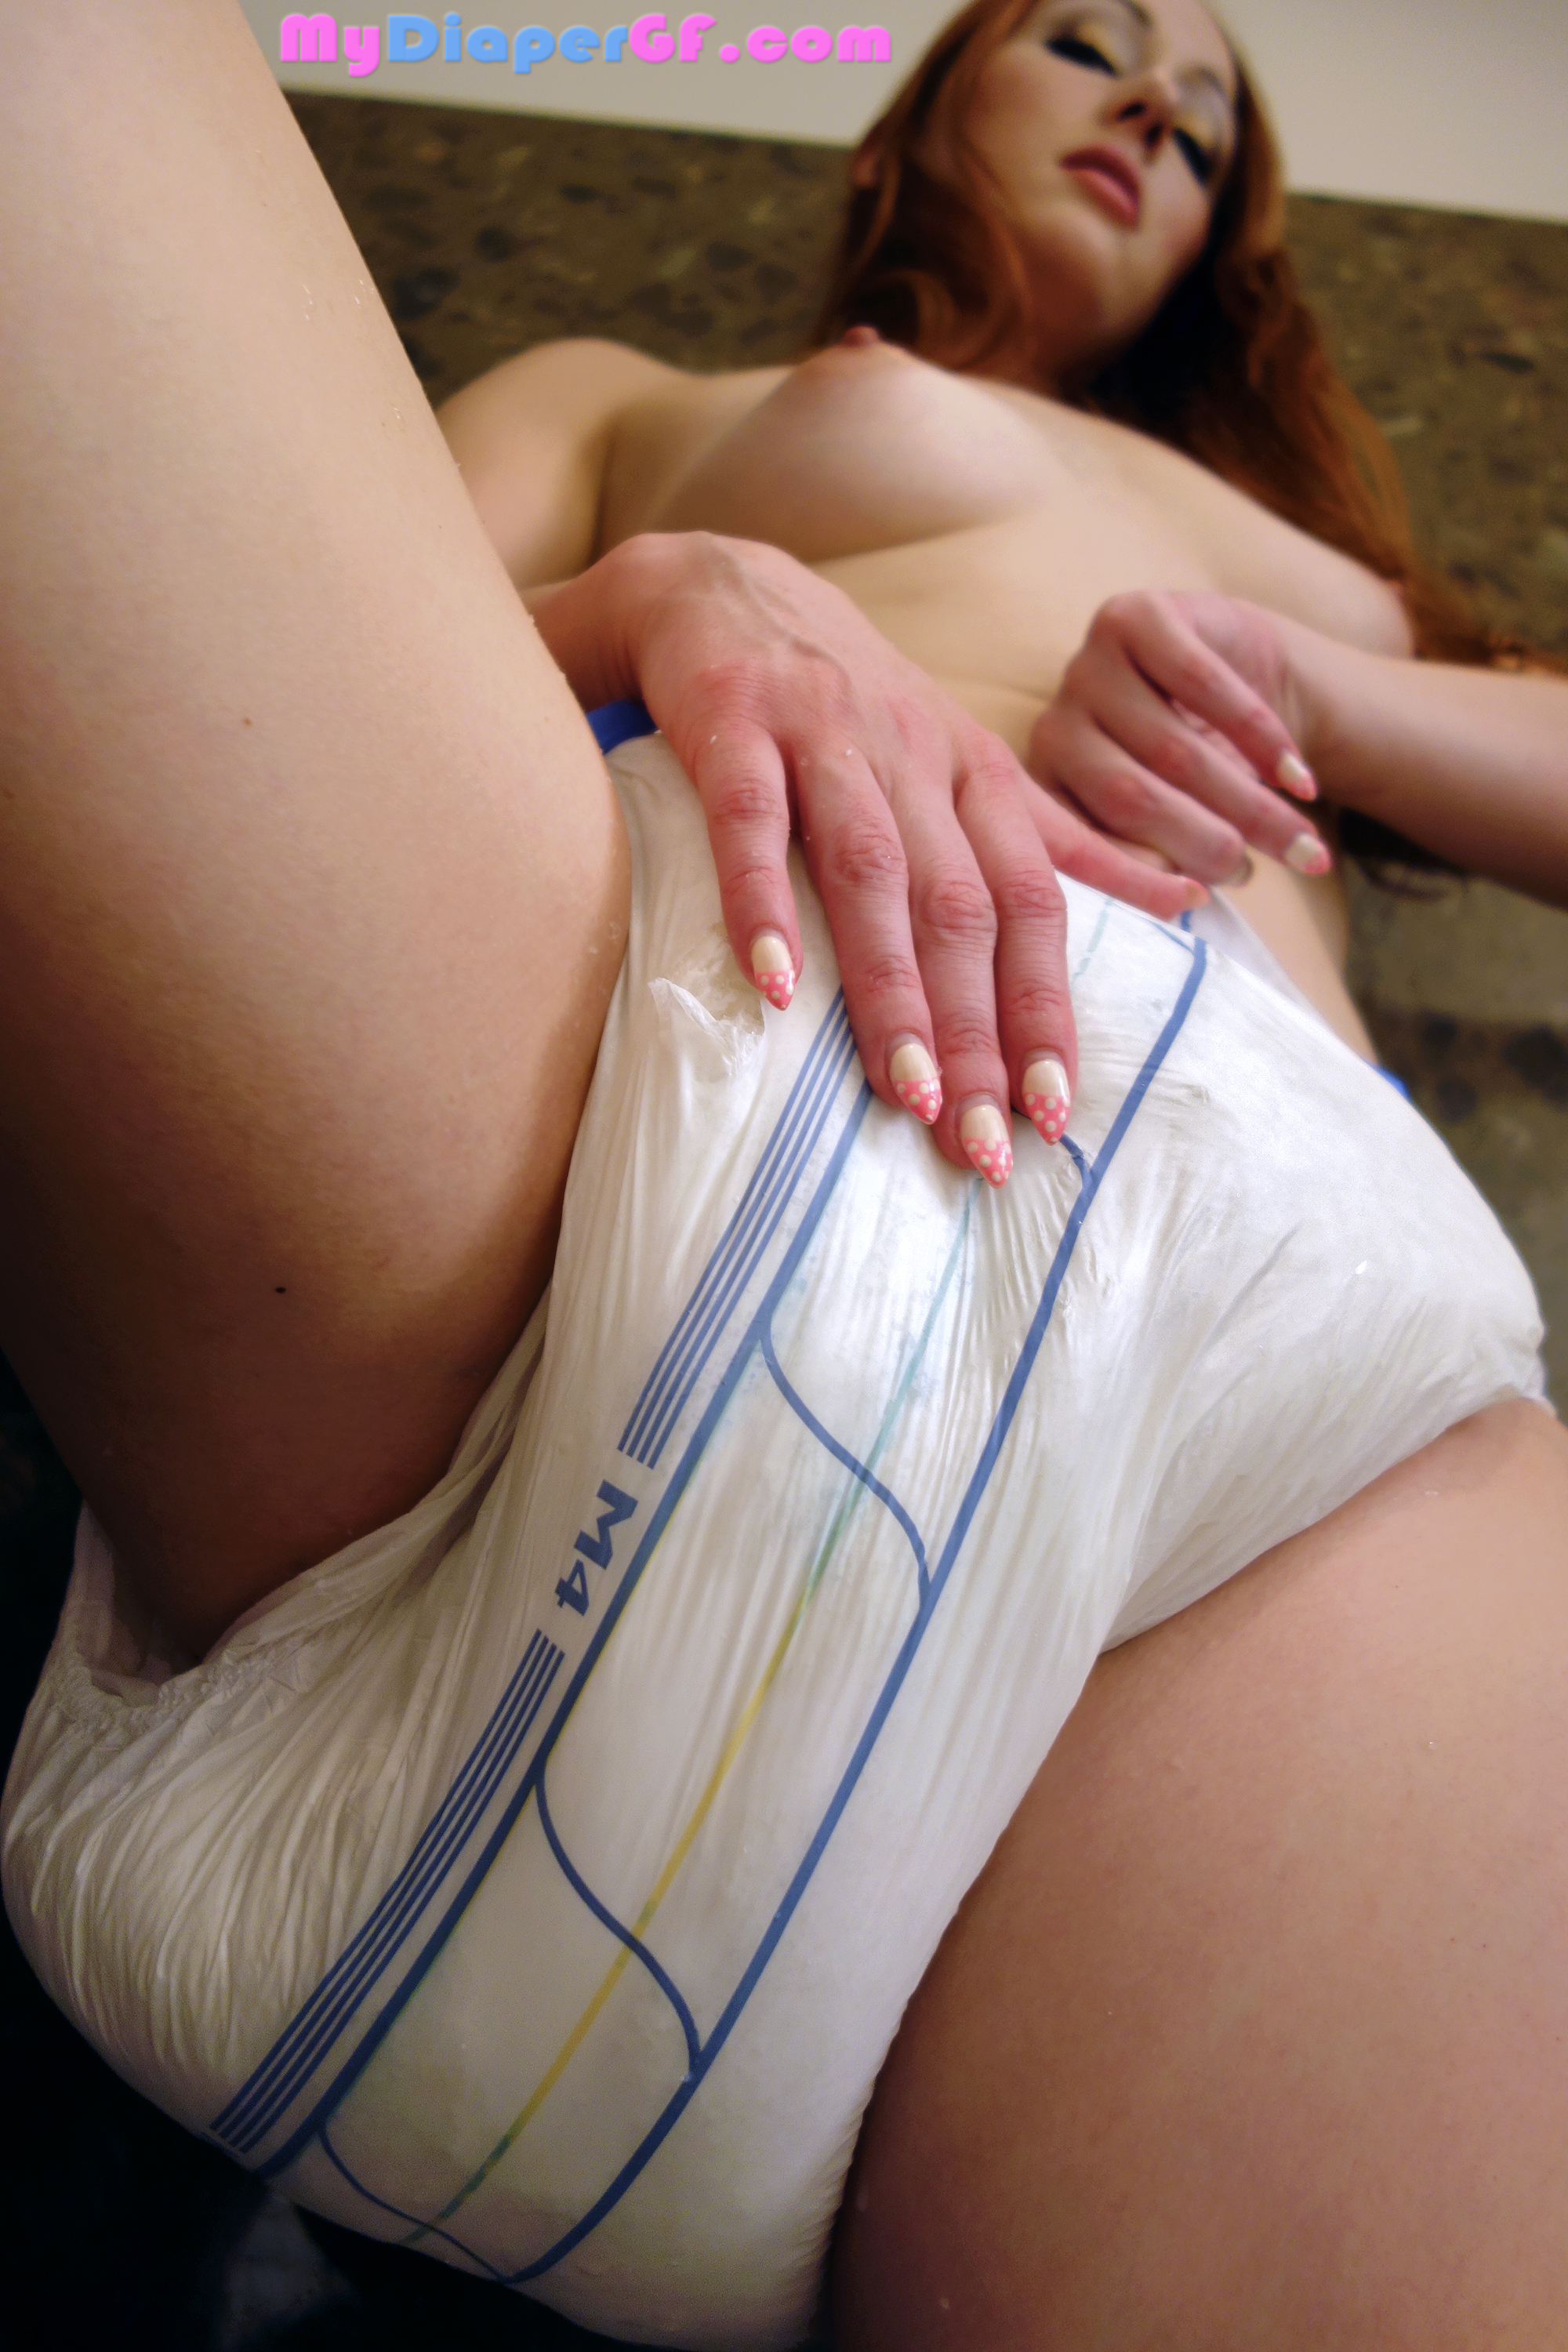 Diaper wearing upskirt